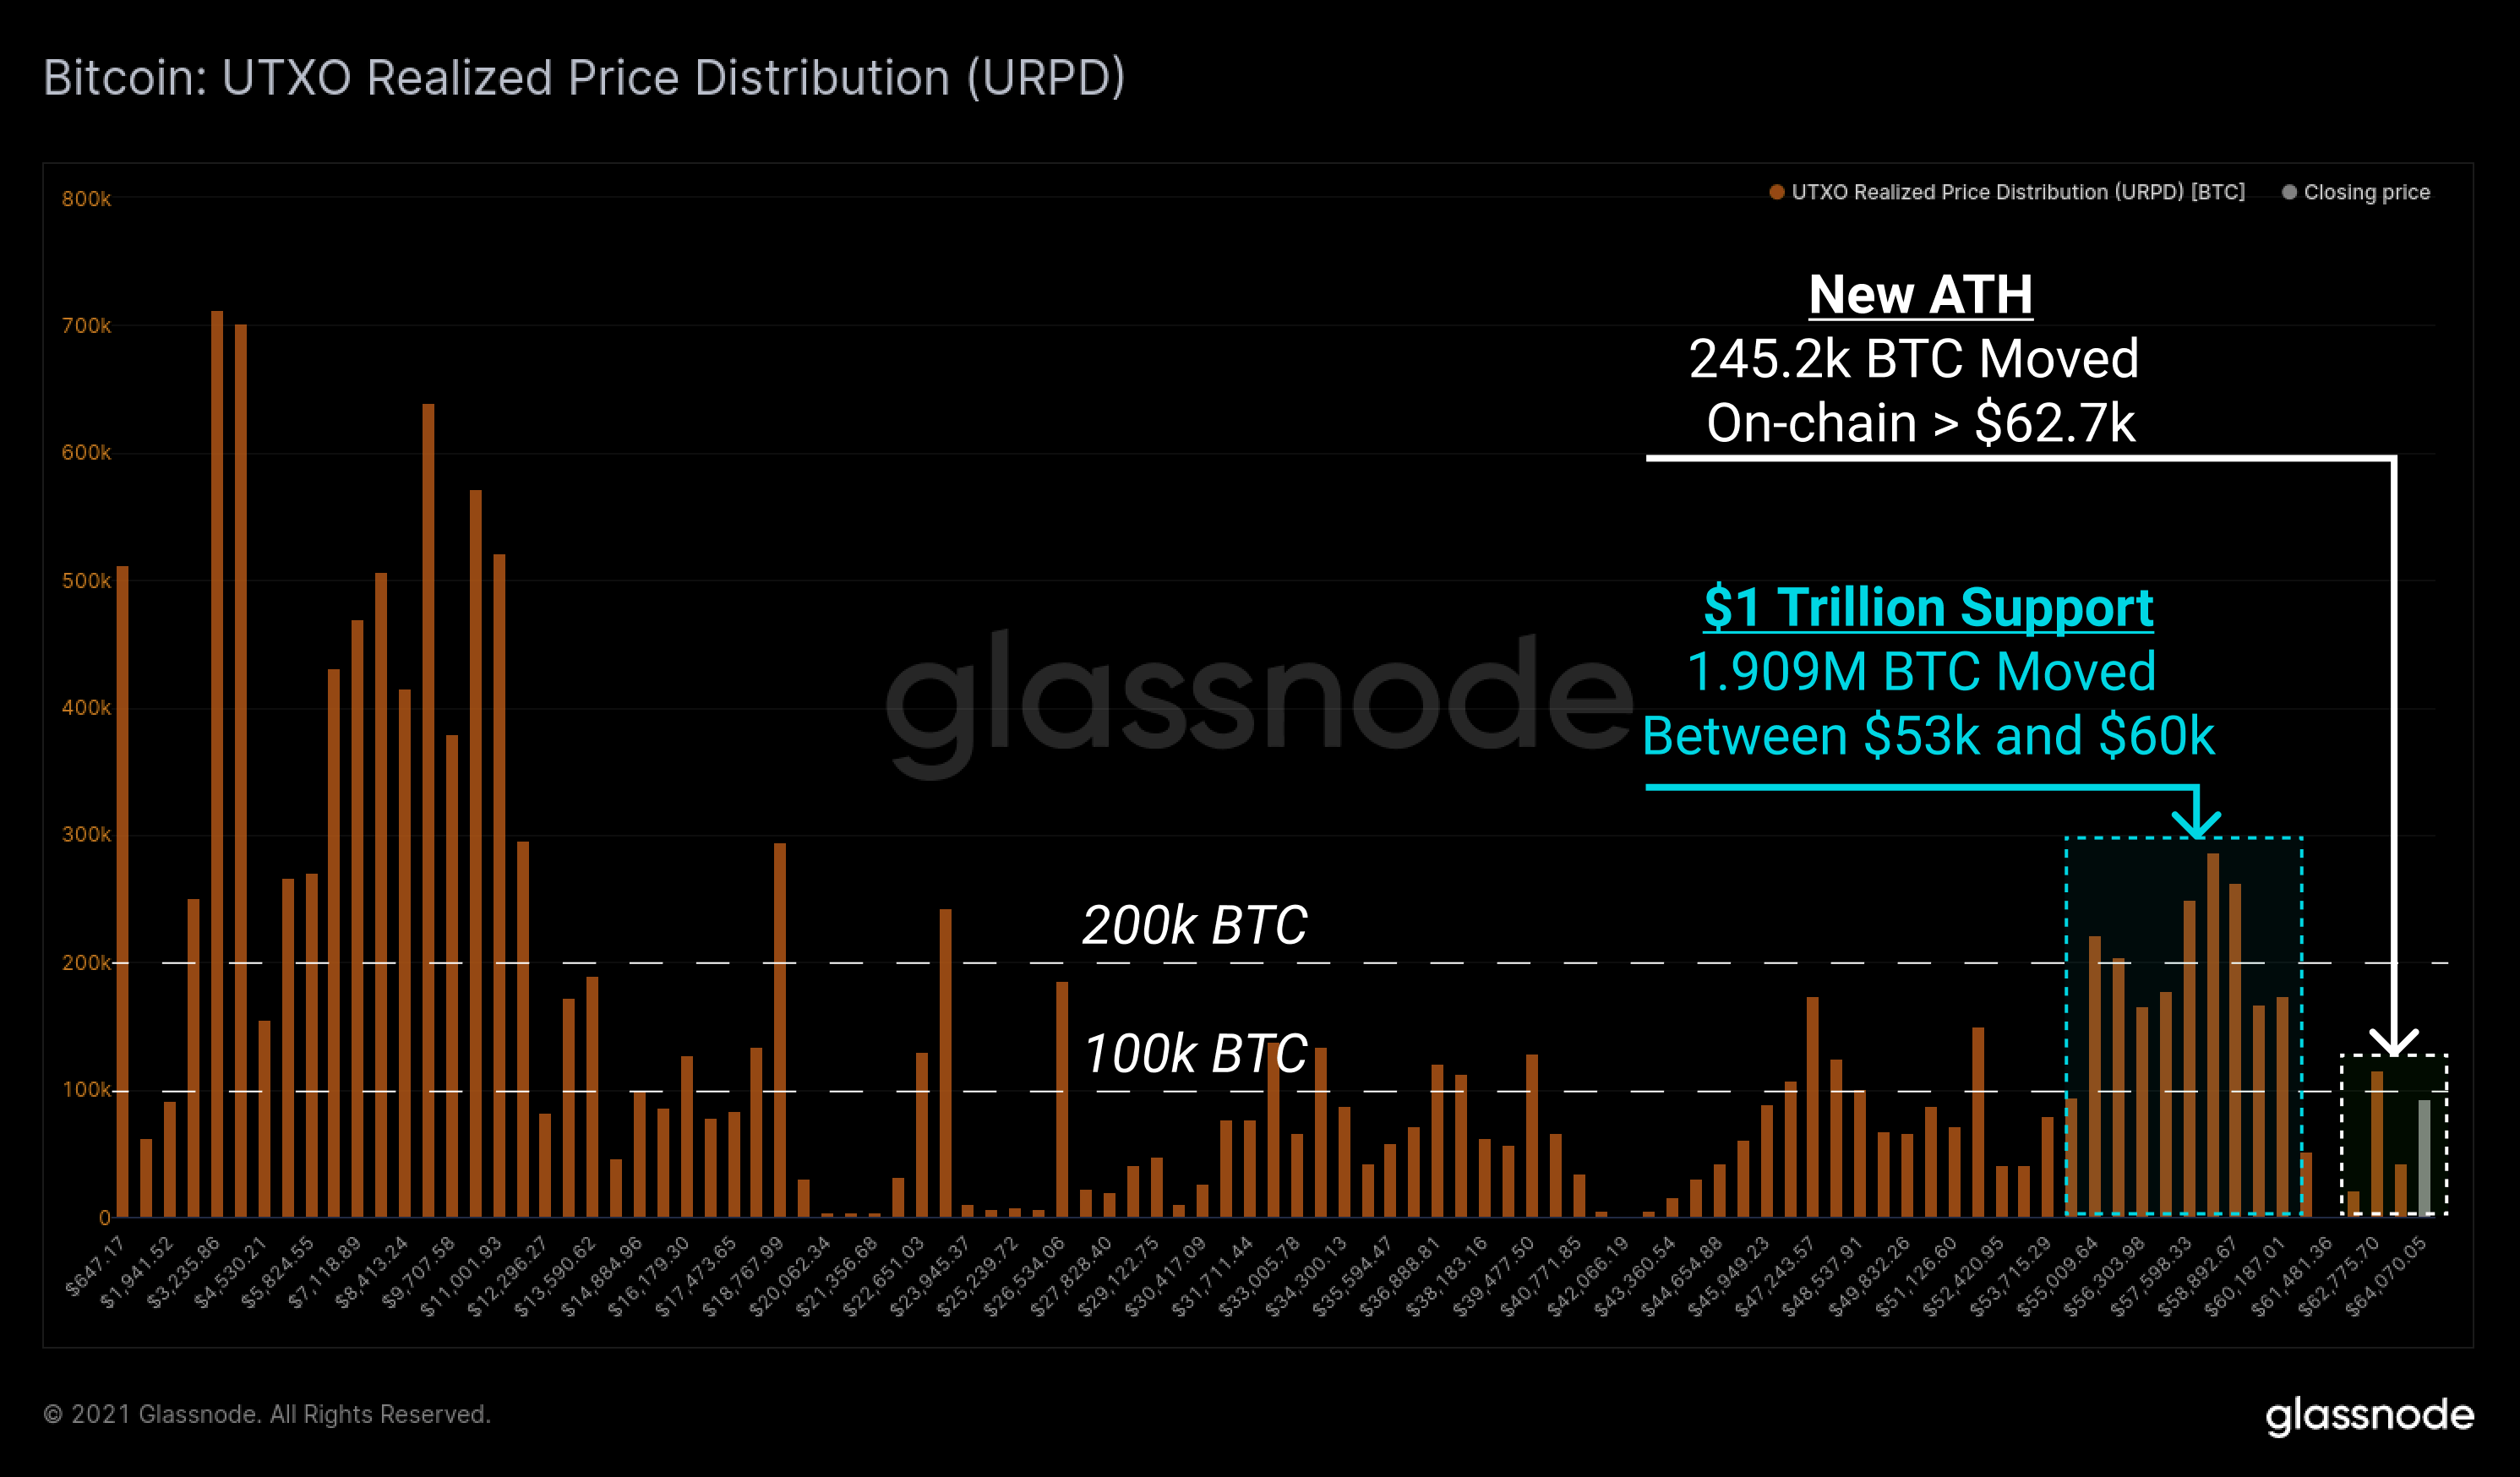 Bitcoin UTXO realized price distribution